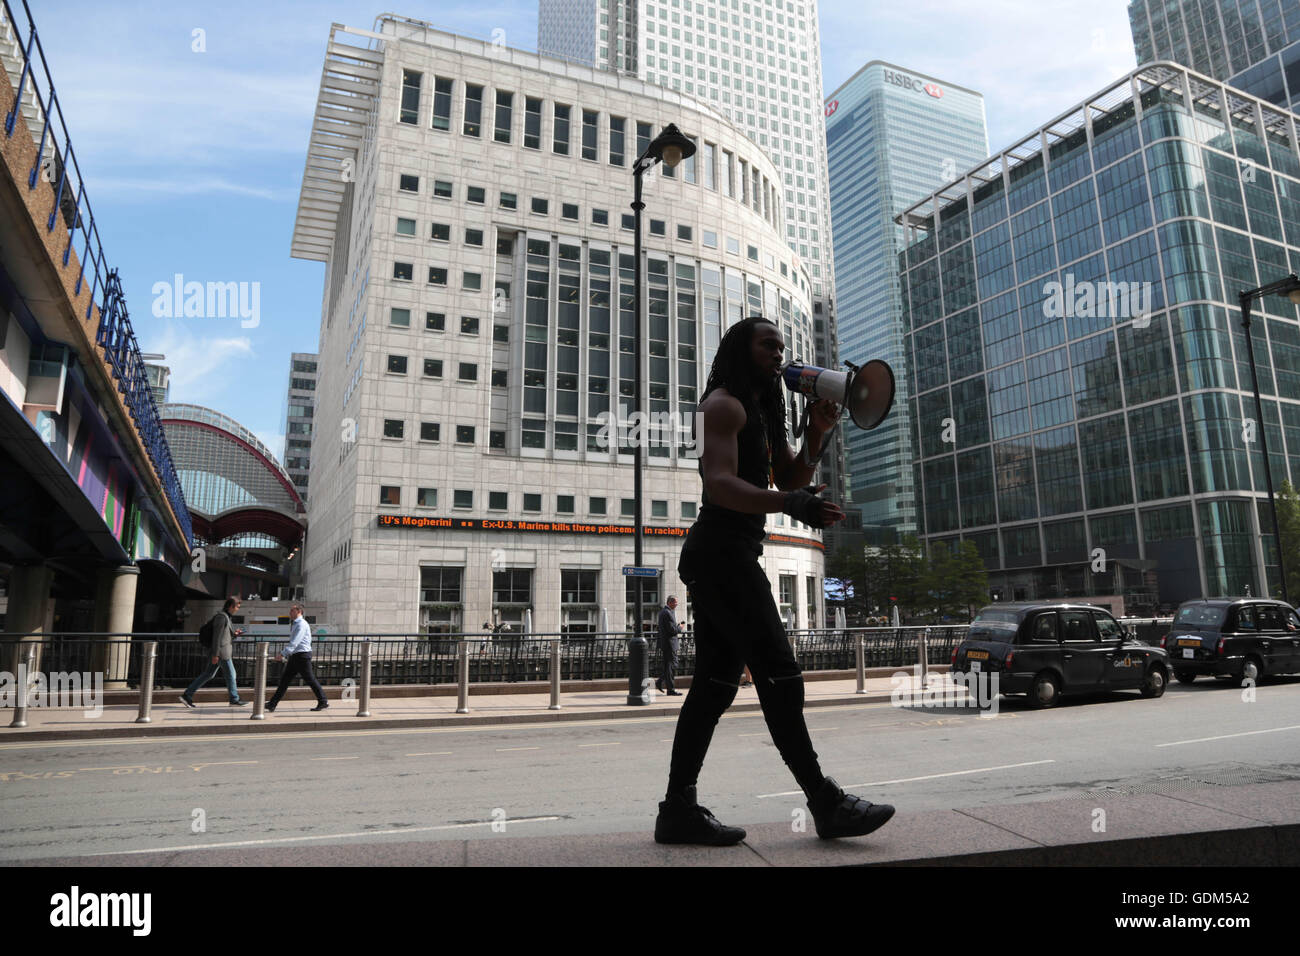 London, UK. 18th July, 2016. Demonstrators protest in Canary Wharf at the shooting of African Americans by U.S police - Stock Image